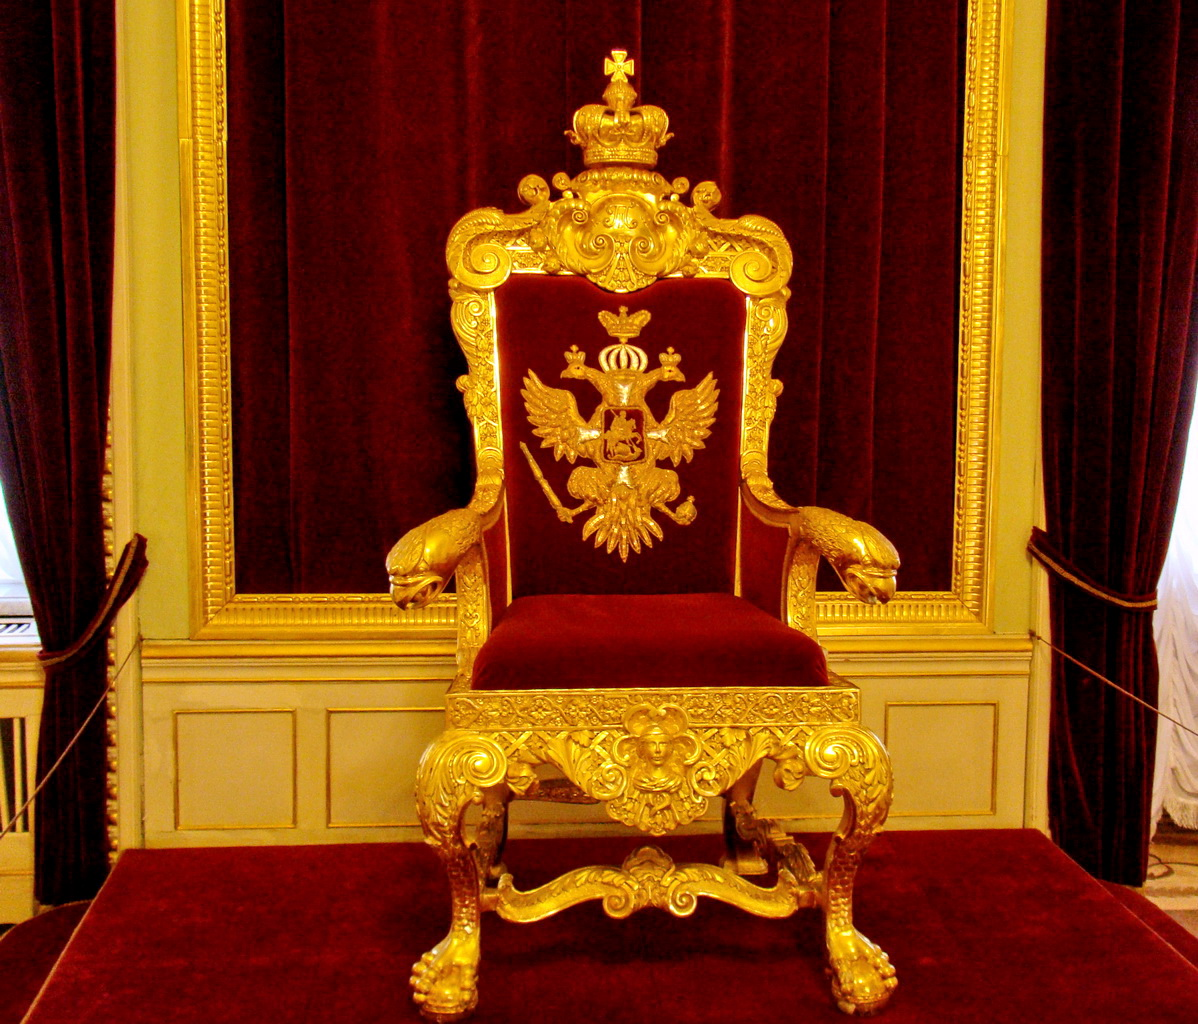 File:Emperor's Throne.jpg